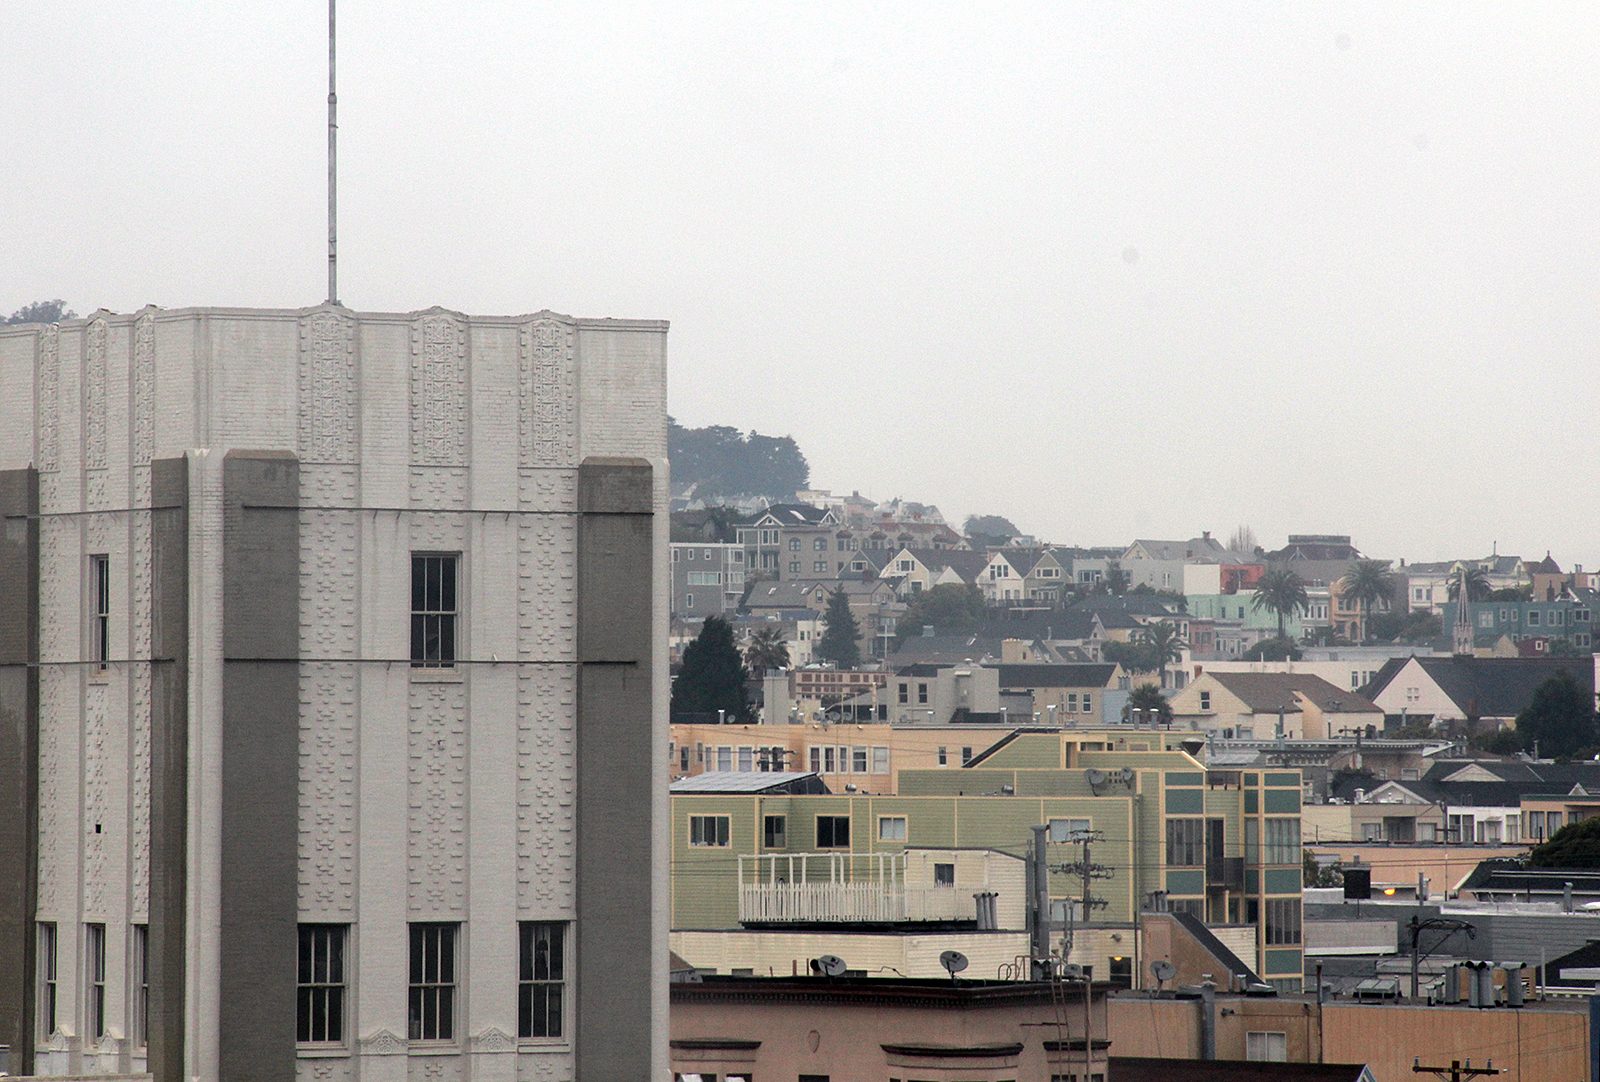 A view of the Mission from Bernal Heights on a cloudy day.